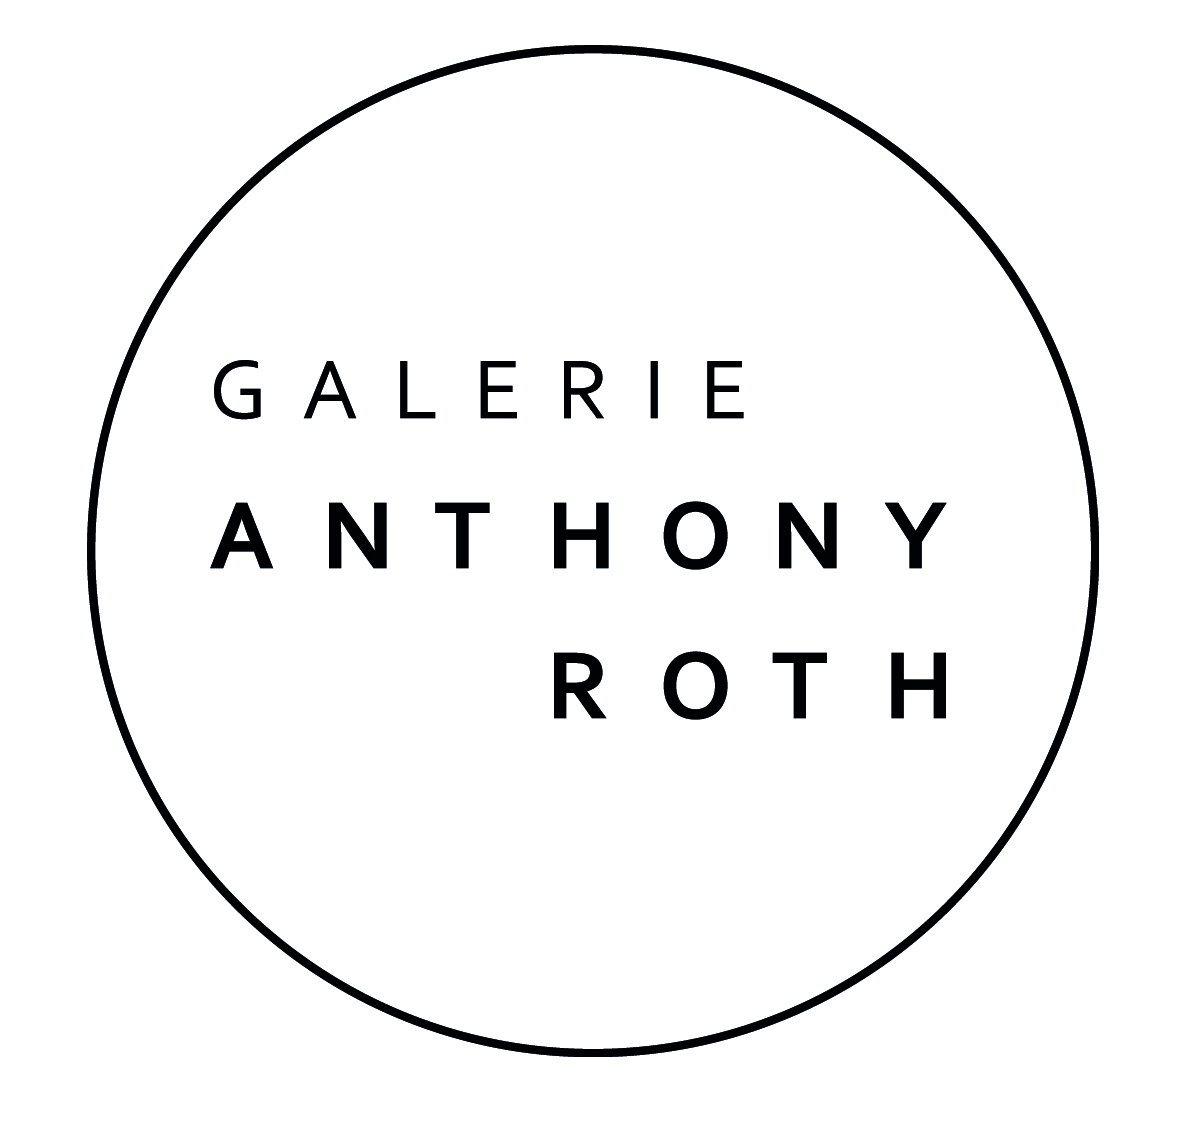 Galerie Anthony Roth